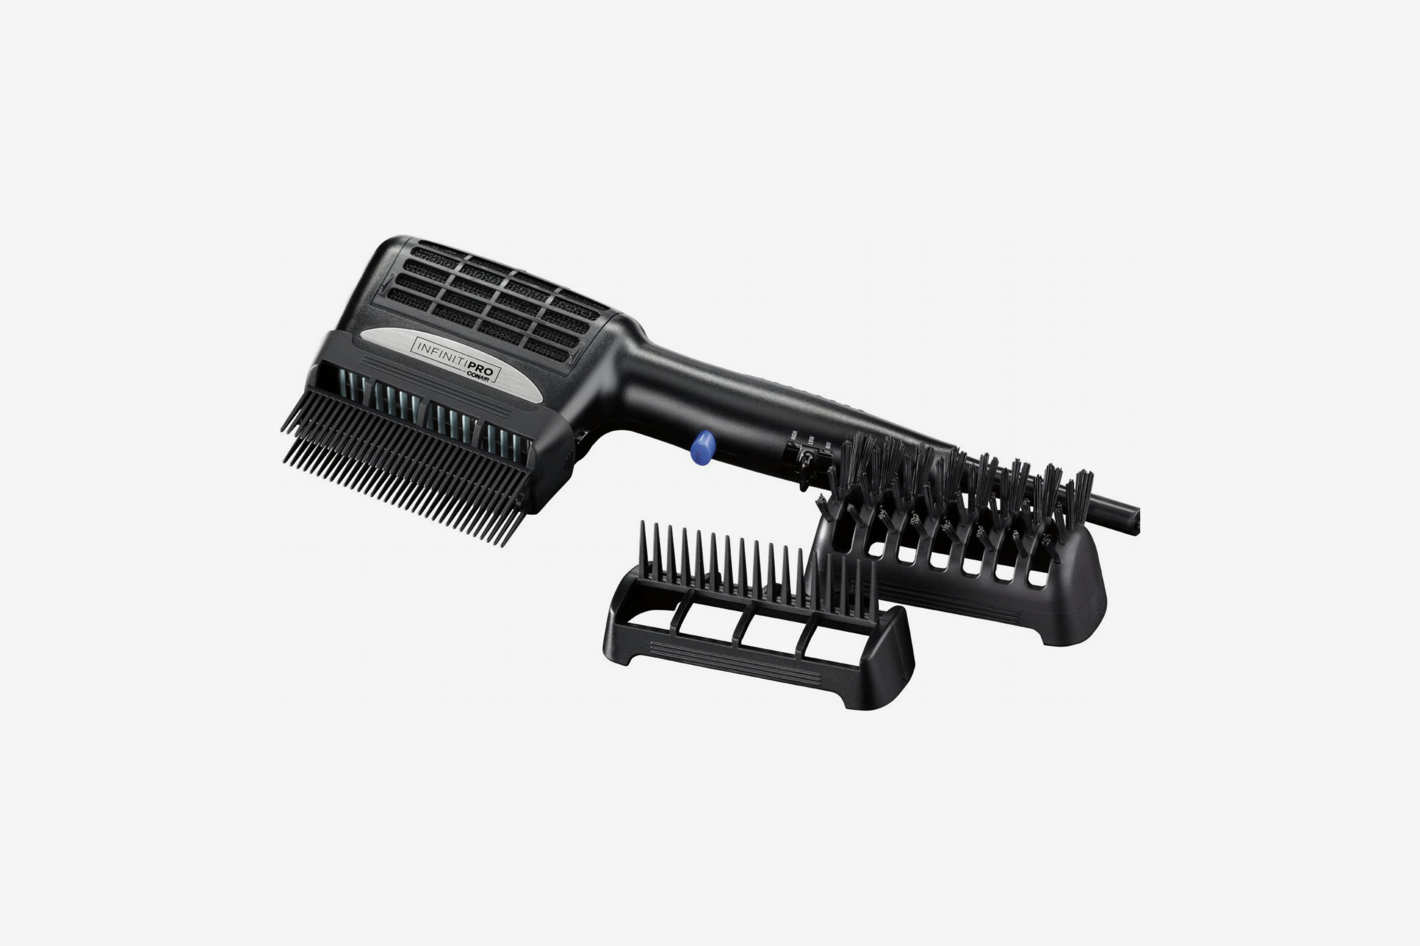 INFINITIPRO BY CONAIR 1875 Watt 3-in-1 Ceramic Styler